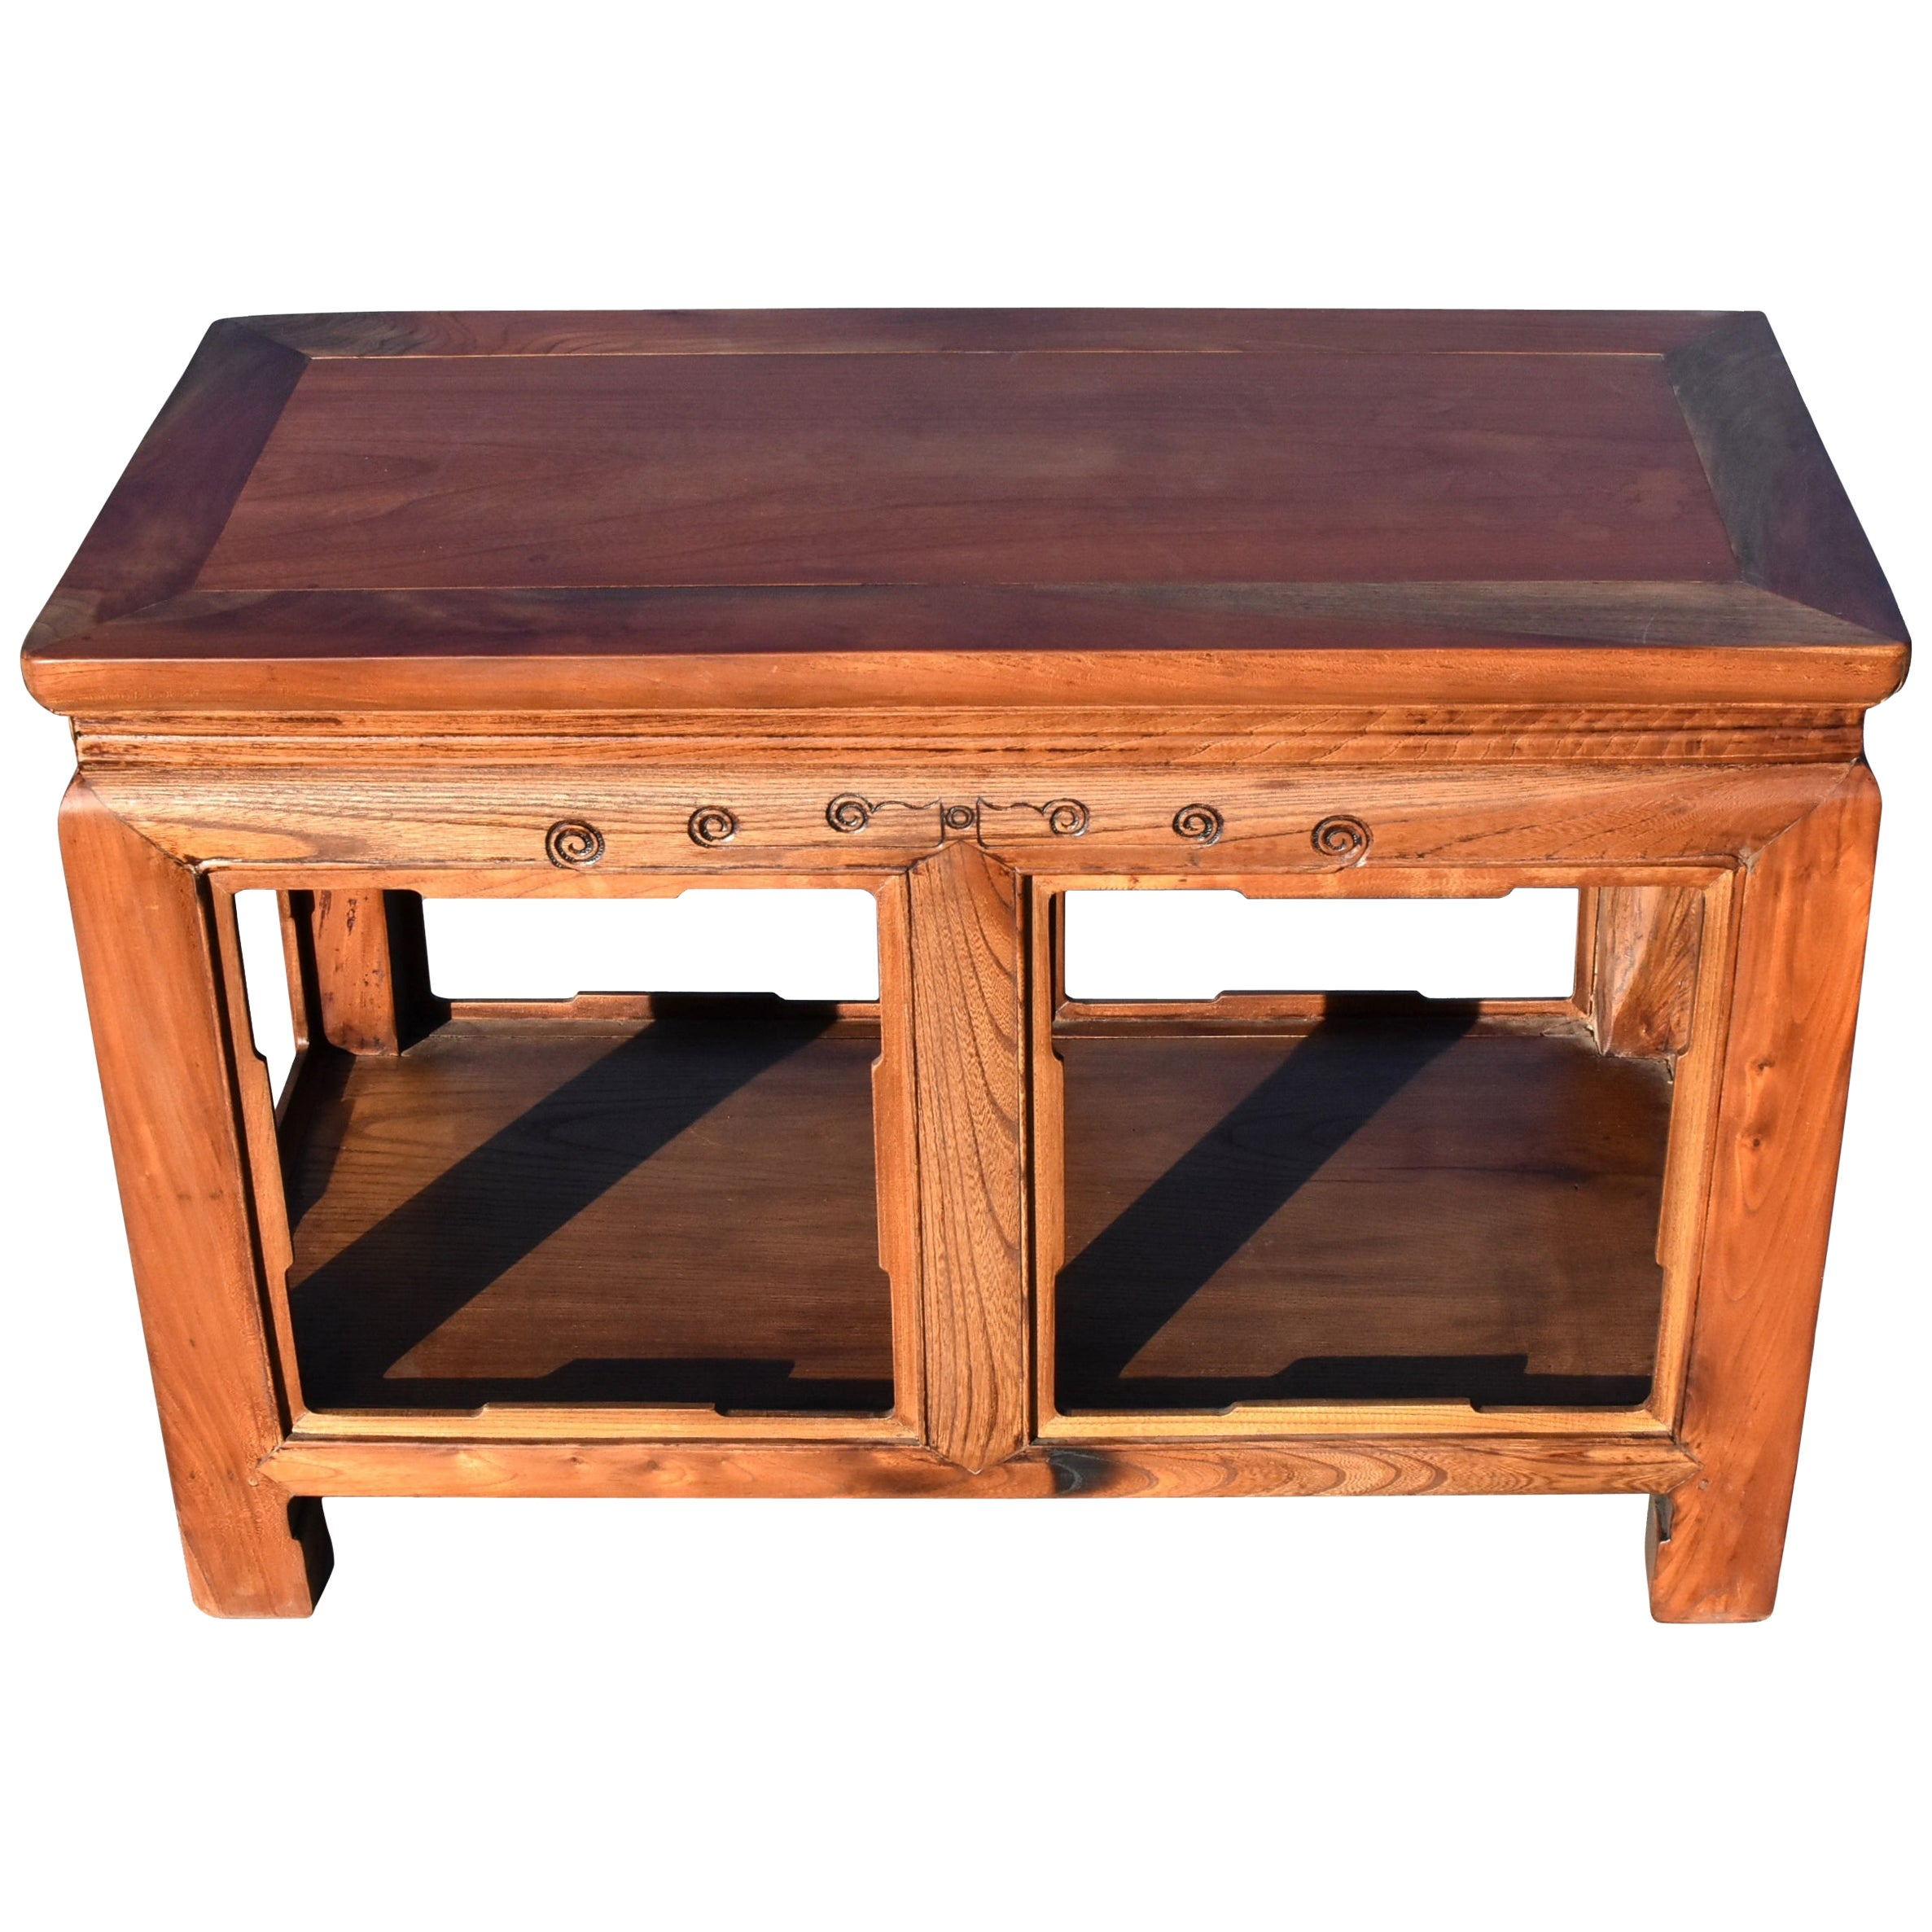 Asian Solid Wood Ming Style Table, Bench